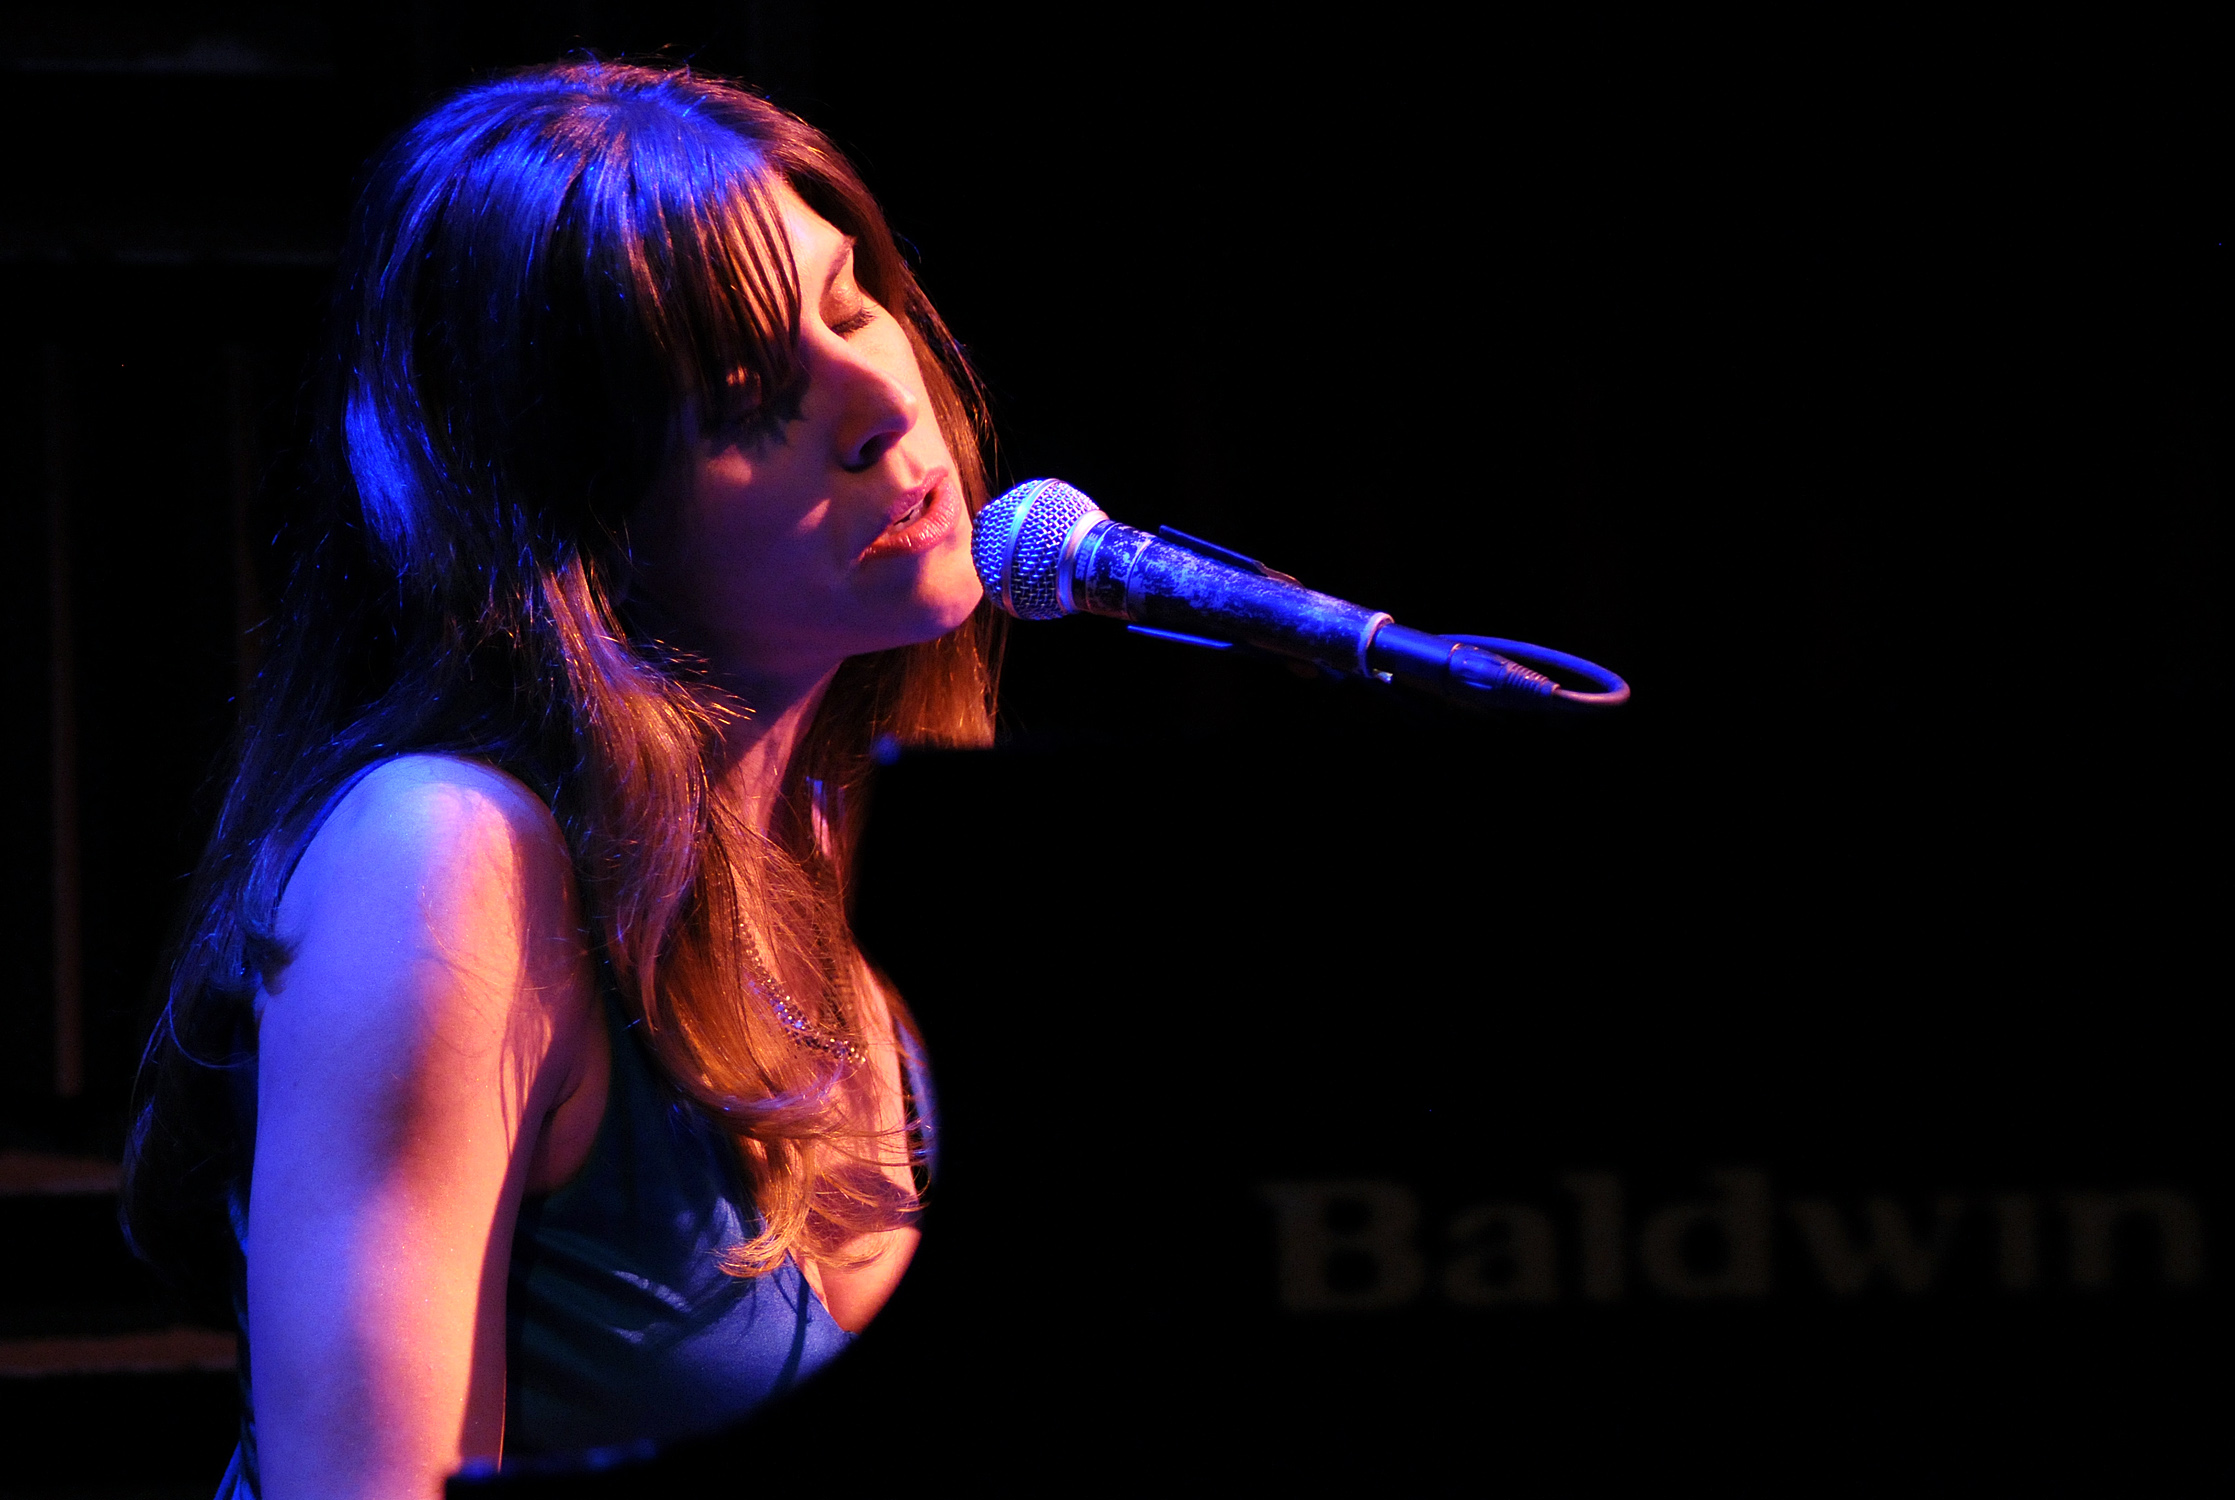 Photo courtesy of Craig Bailey, Joe's Pub at The Public Theater, NYC